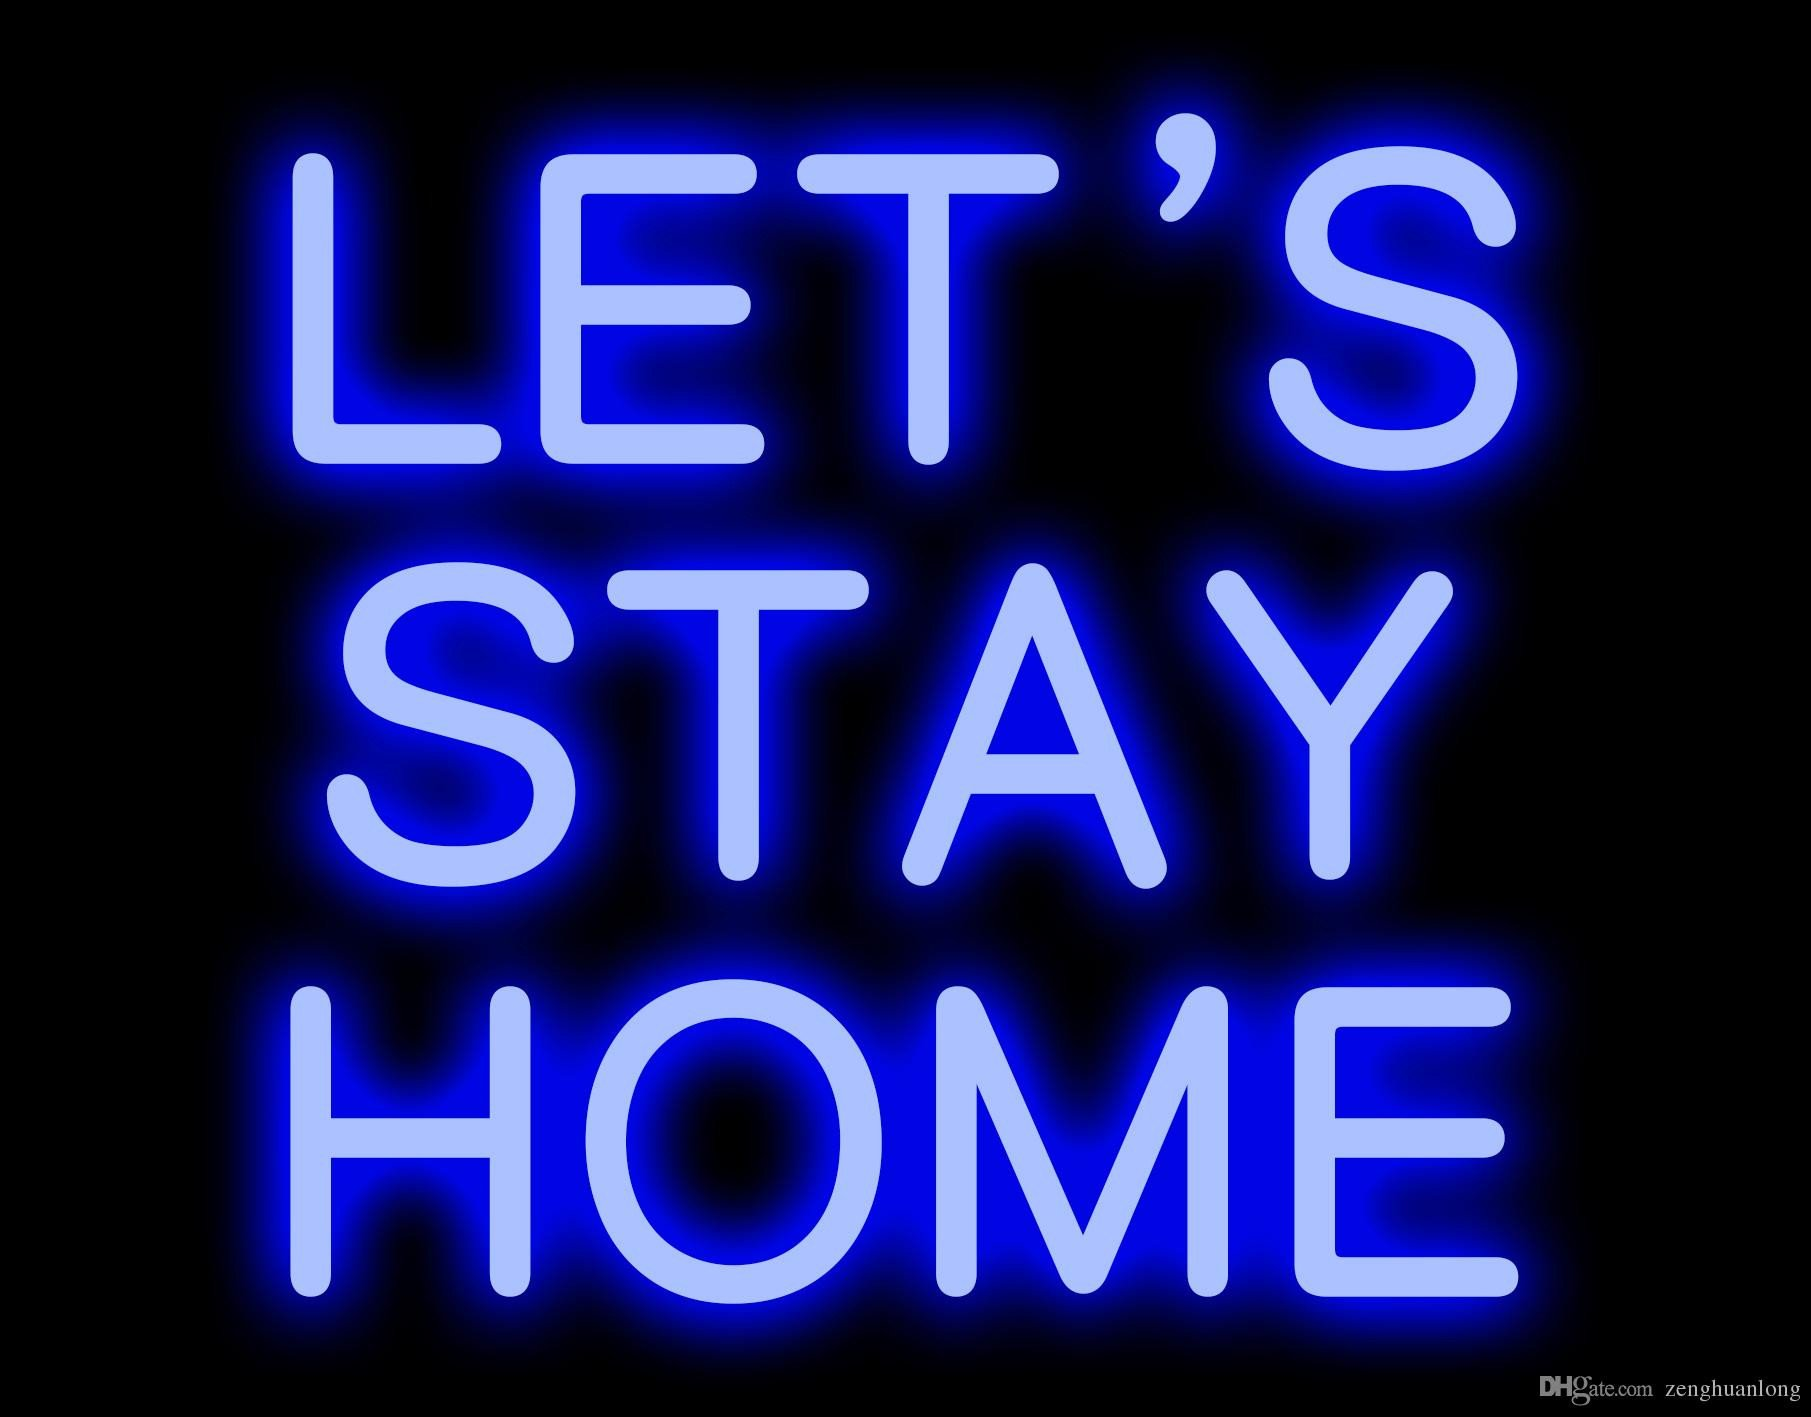 Signs for Bedroom Walls Unique 2019 Fashion New Let S Stay Customer Design Room Wall Windows Display Neon Signs 10x10 From Zenghuanlong $85 43